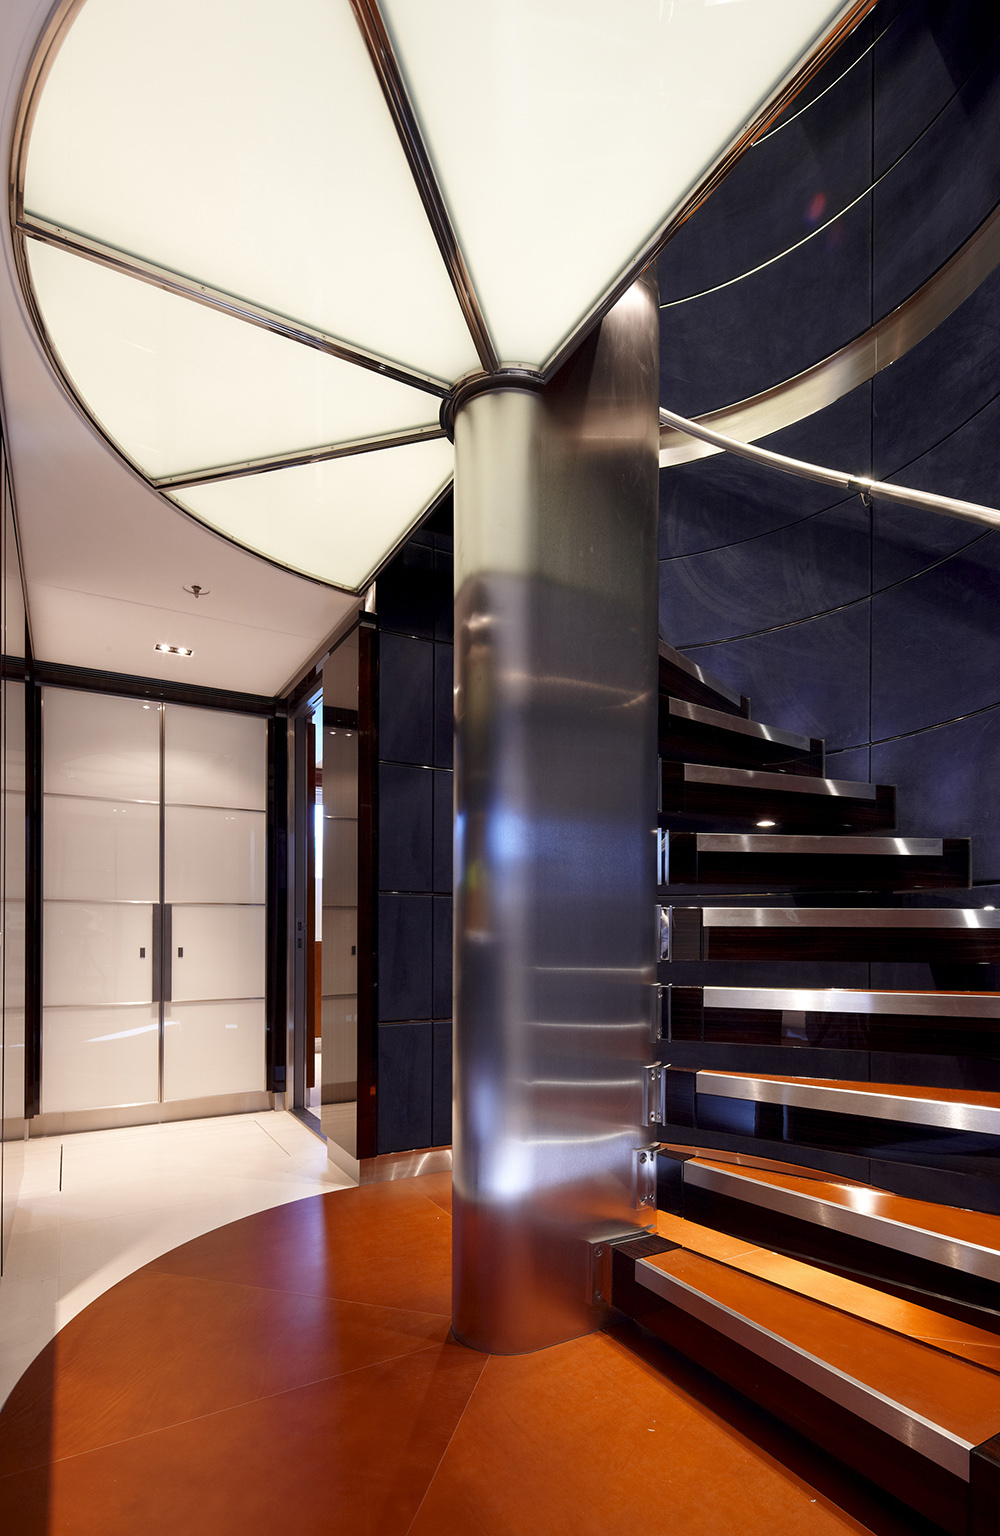 Geometry composed this area with lighted ceiling outlined with gleaming steels. The steel post support on the staircase glows with the steps steel outlines and hand railing. While matte finish flooring and steps' surface contrast the glowing effect.